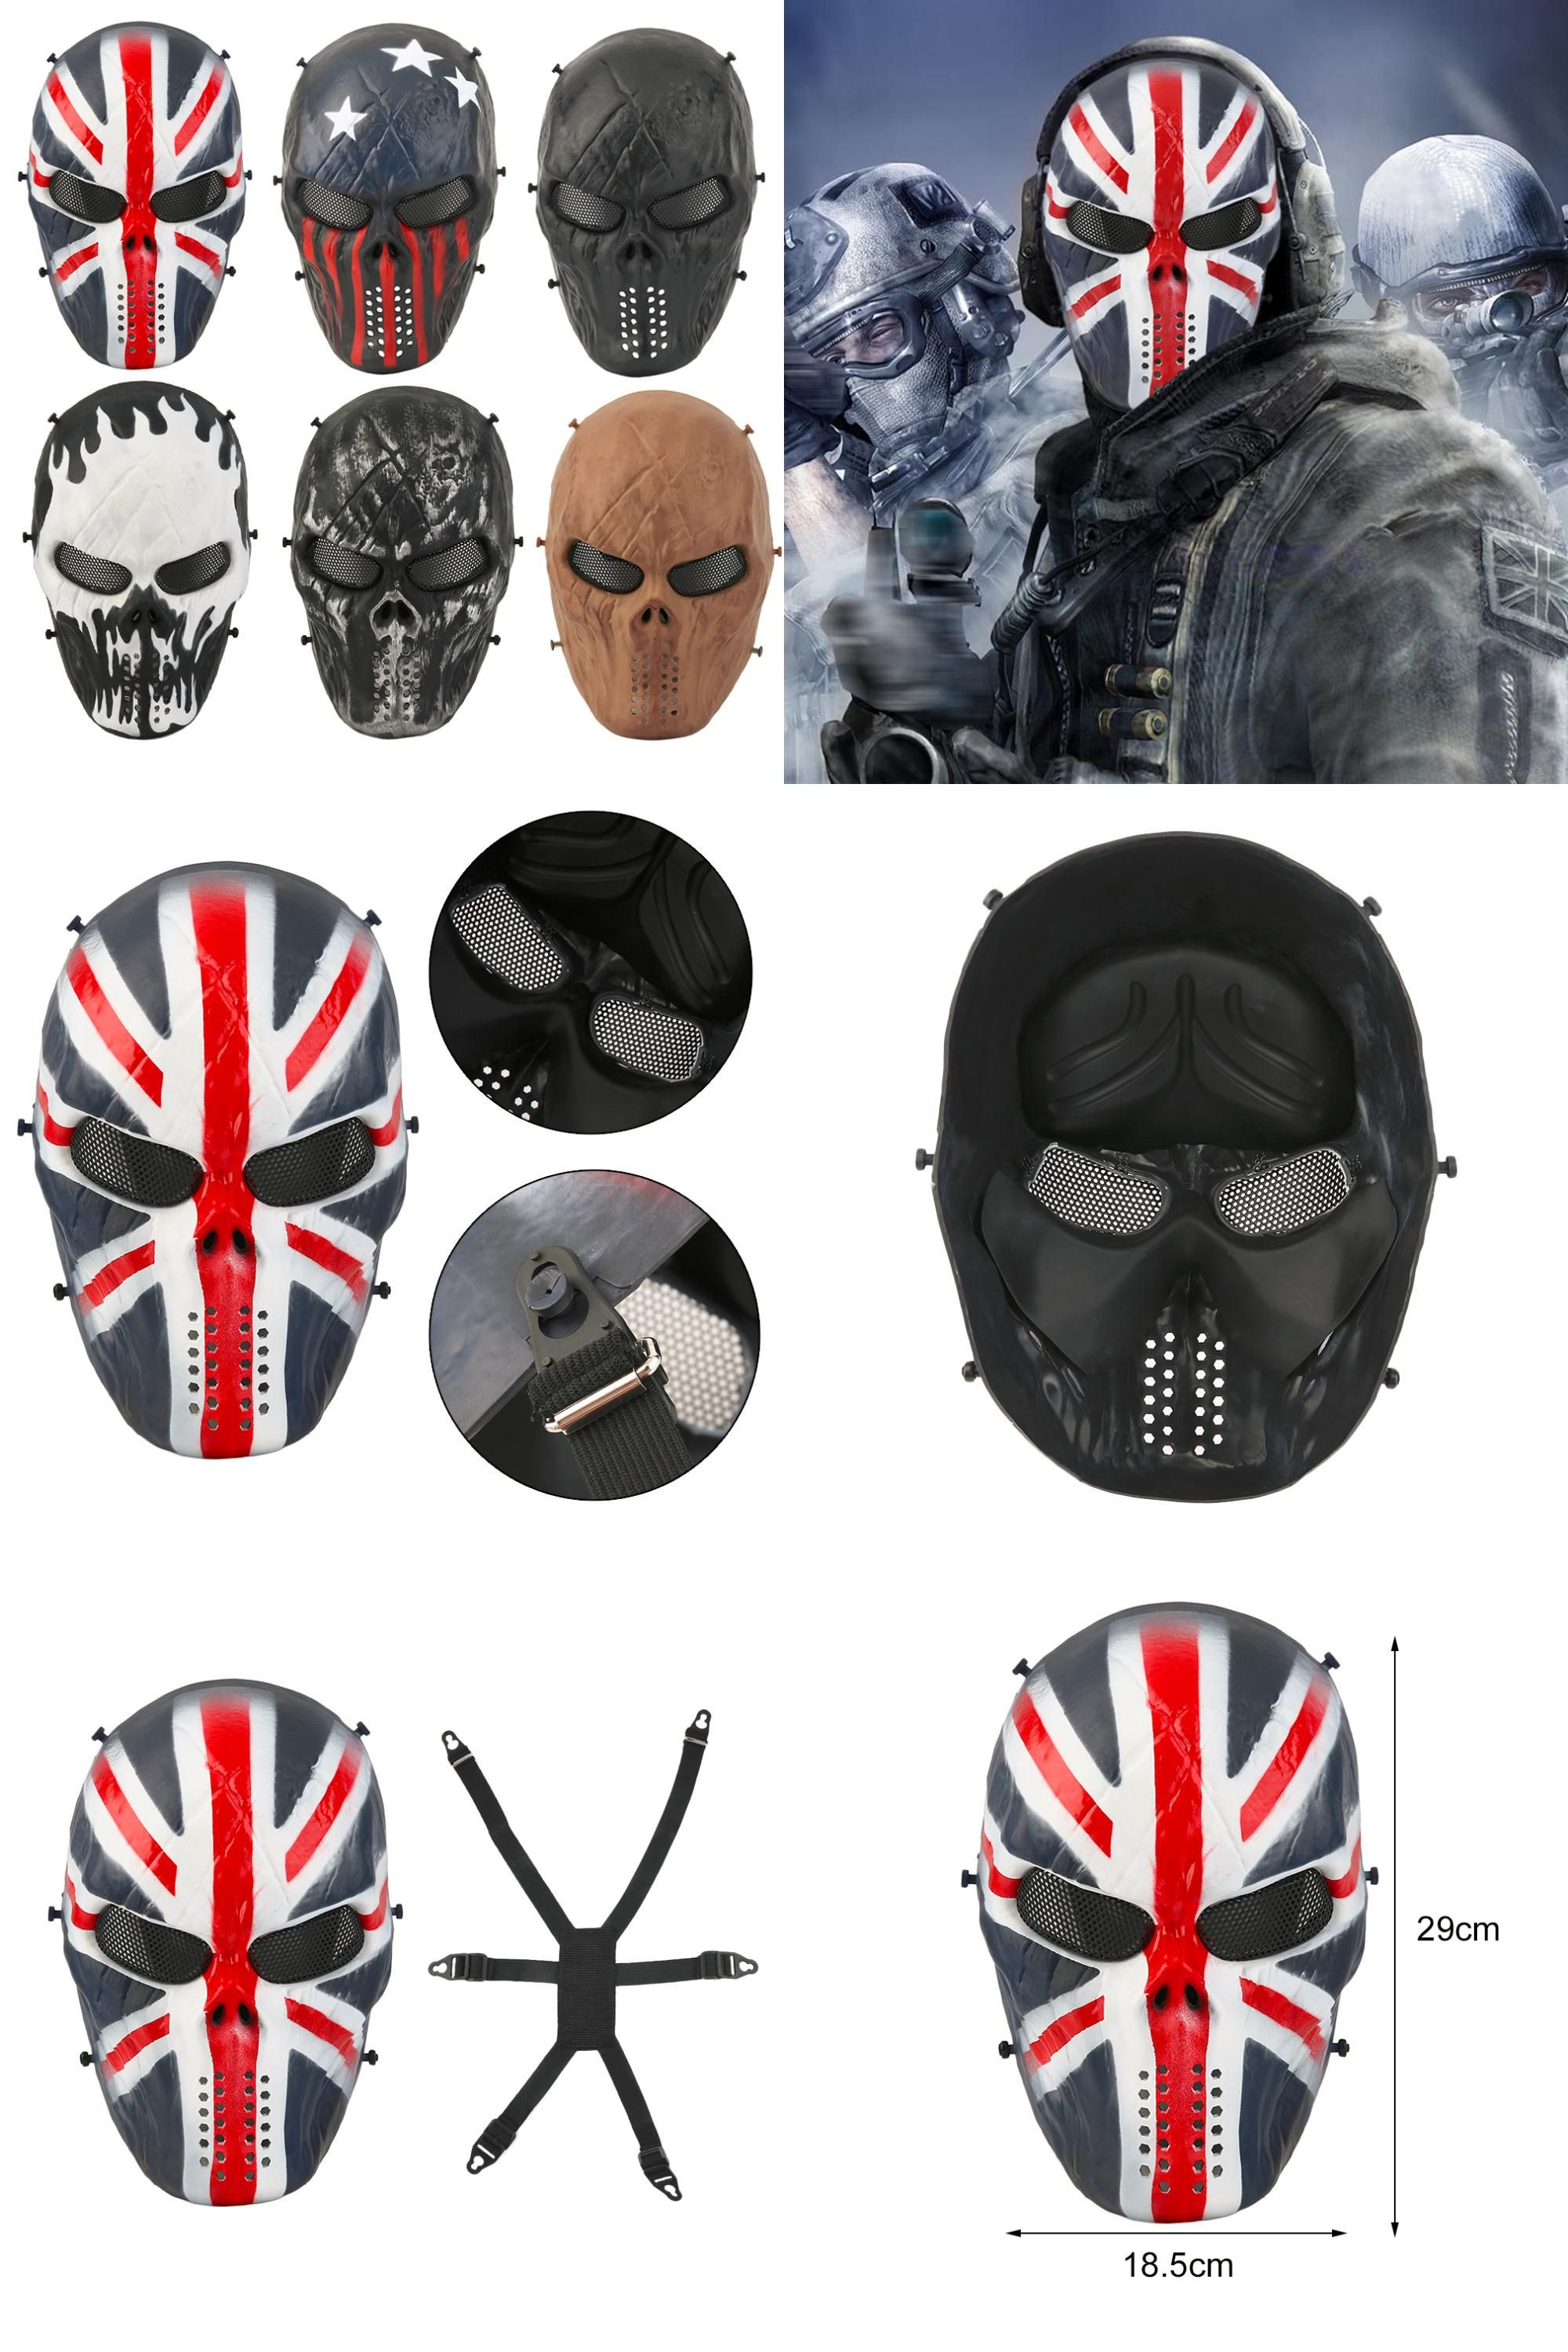 Visit to Buy] Typhoon Camouflage Hunting Accessories Masks Ghost ...